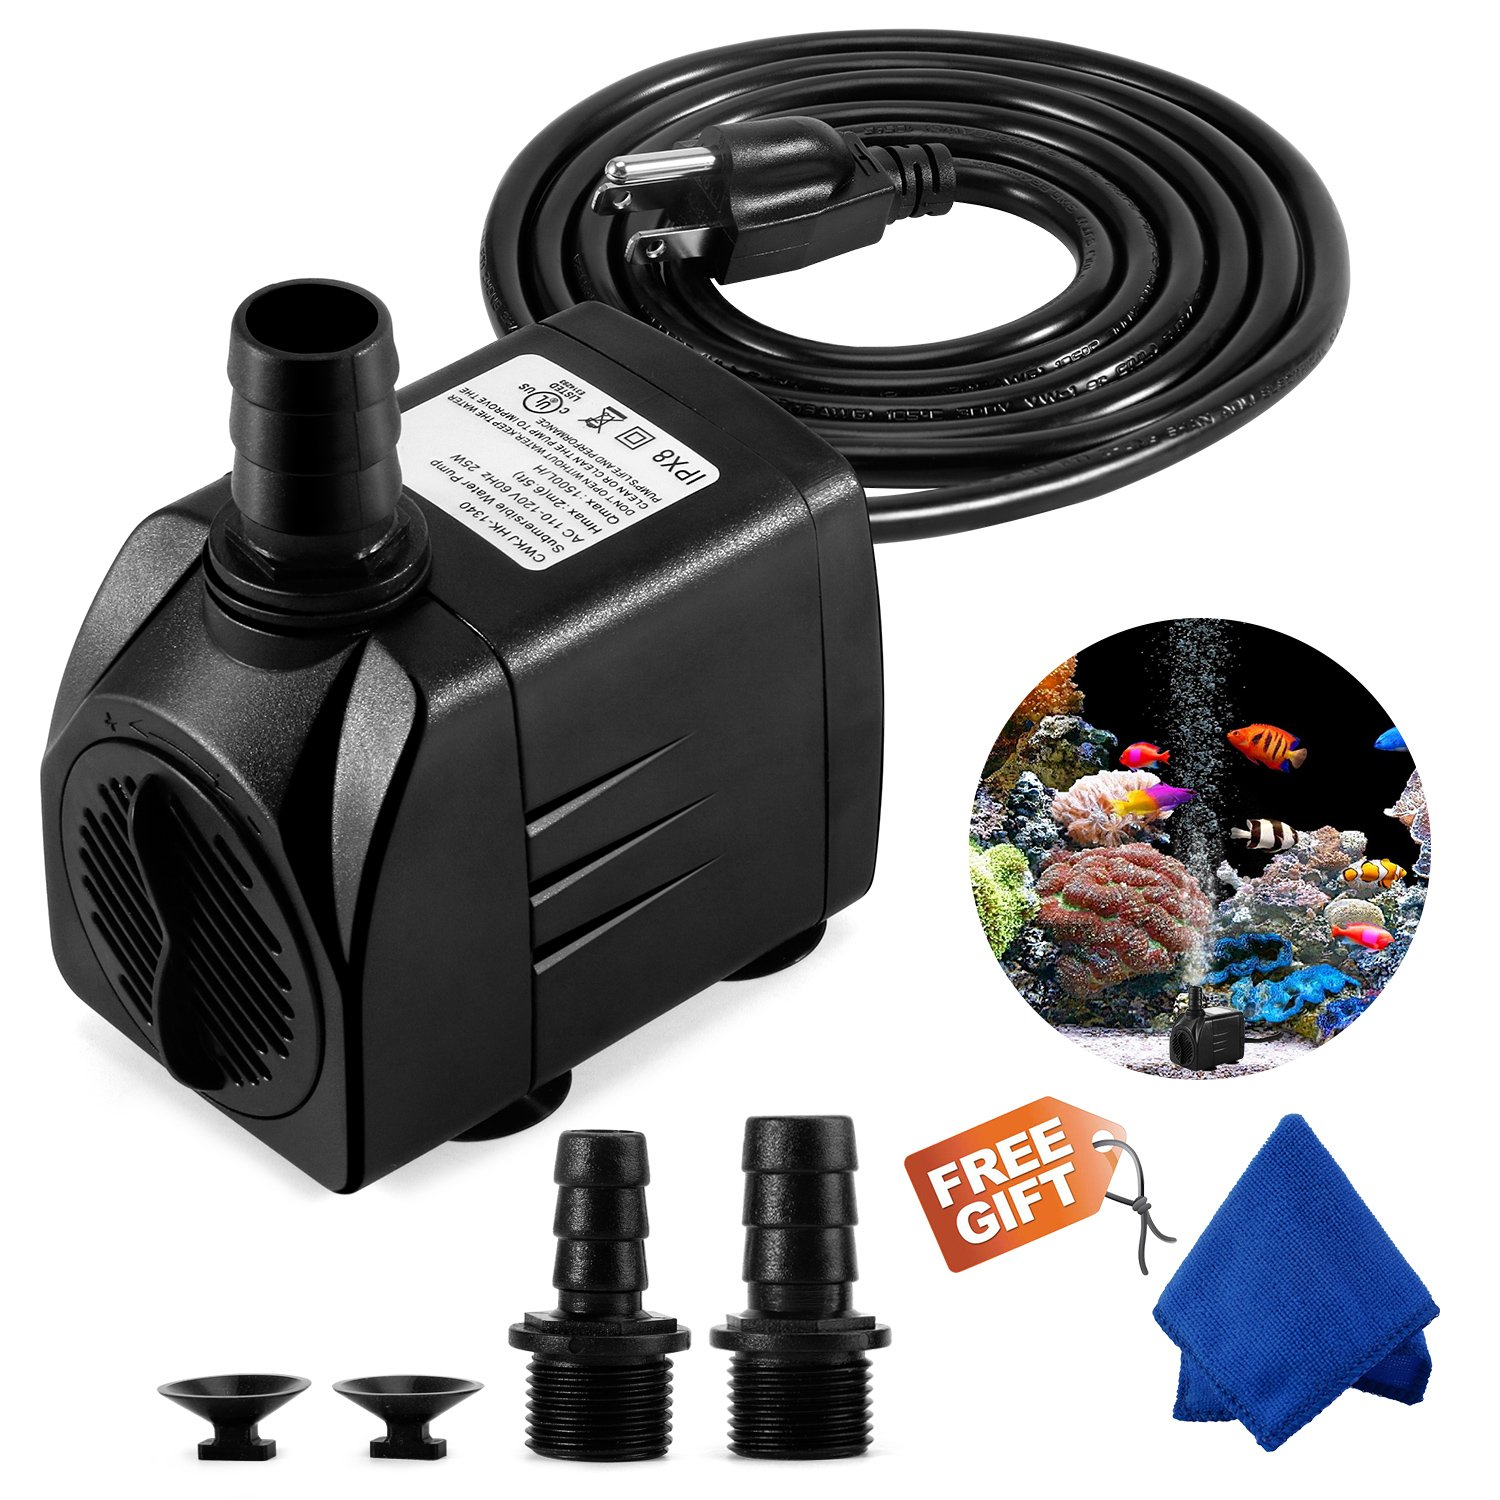 Fountain Pump, 400GPH Submersible Water Pump, Durable 25W Outdoor Fountain Water Pump with 6.5ft Power Cord, 3 Nozzles for Aquarium, Pond, Fish Tank, Water Pump Hydroponics, Backyard Fountain by CWKJ